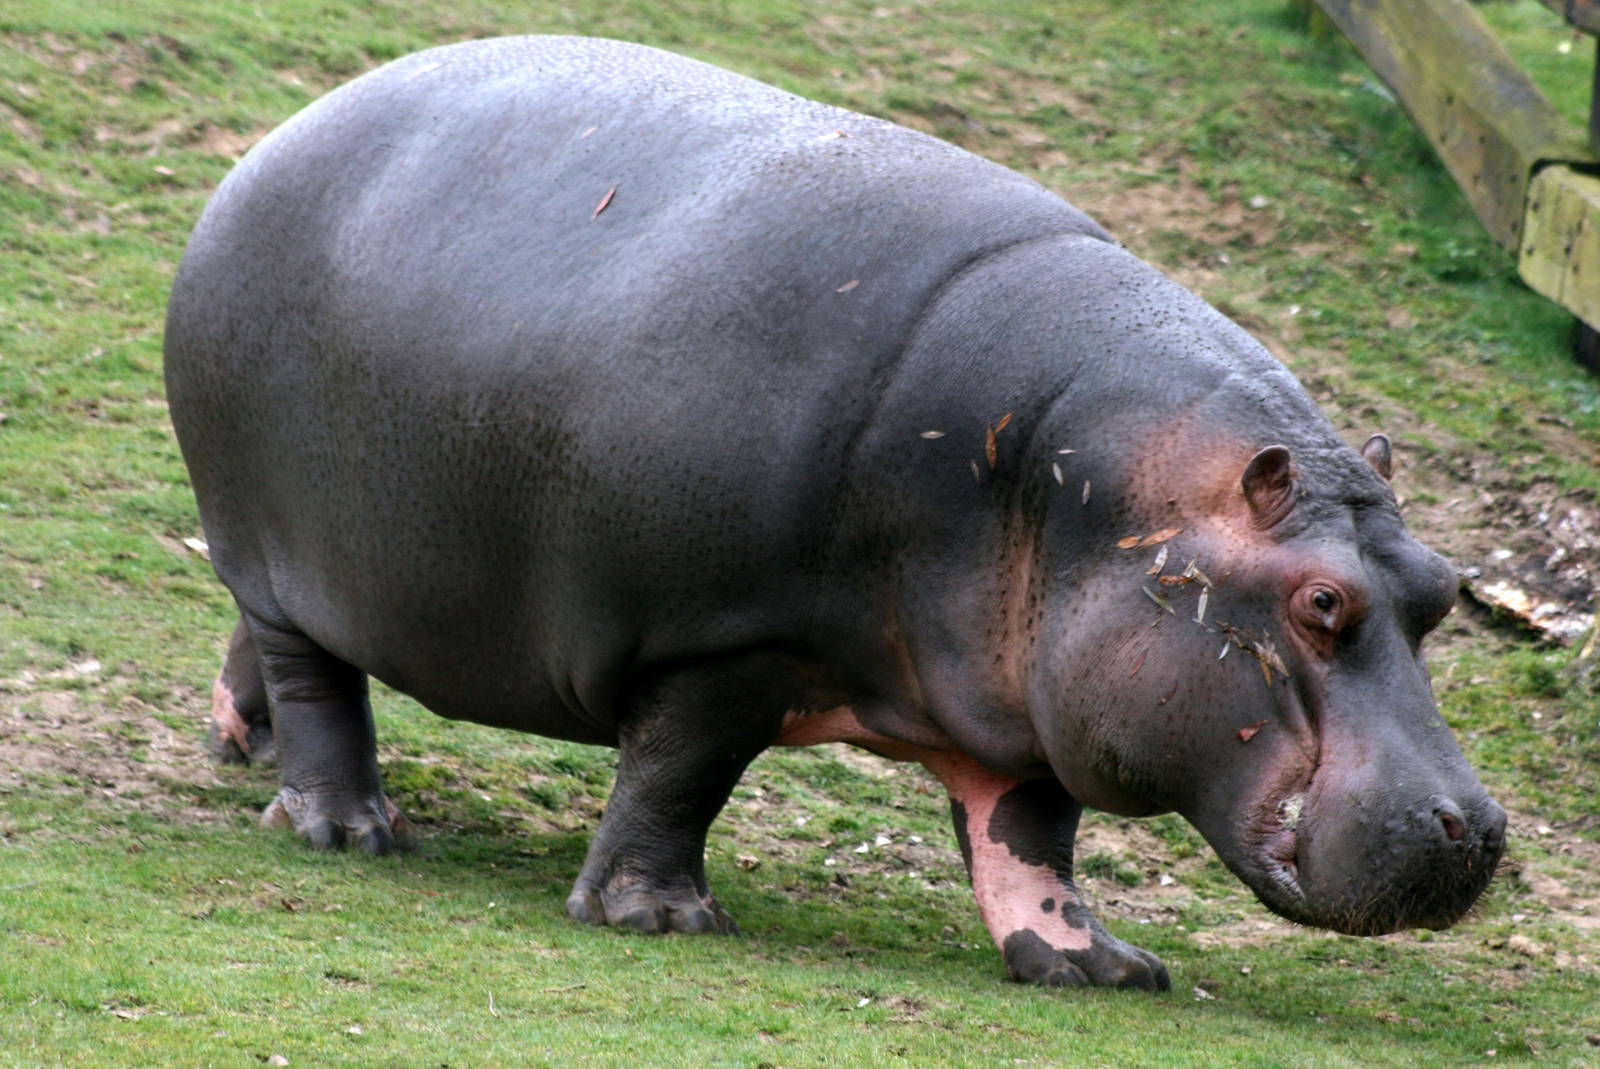 Hippopotamus - 10 photo